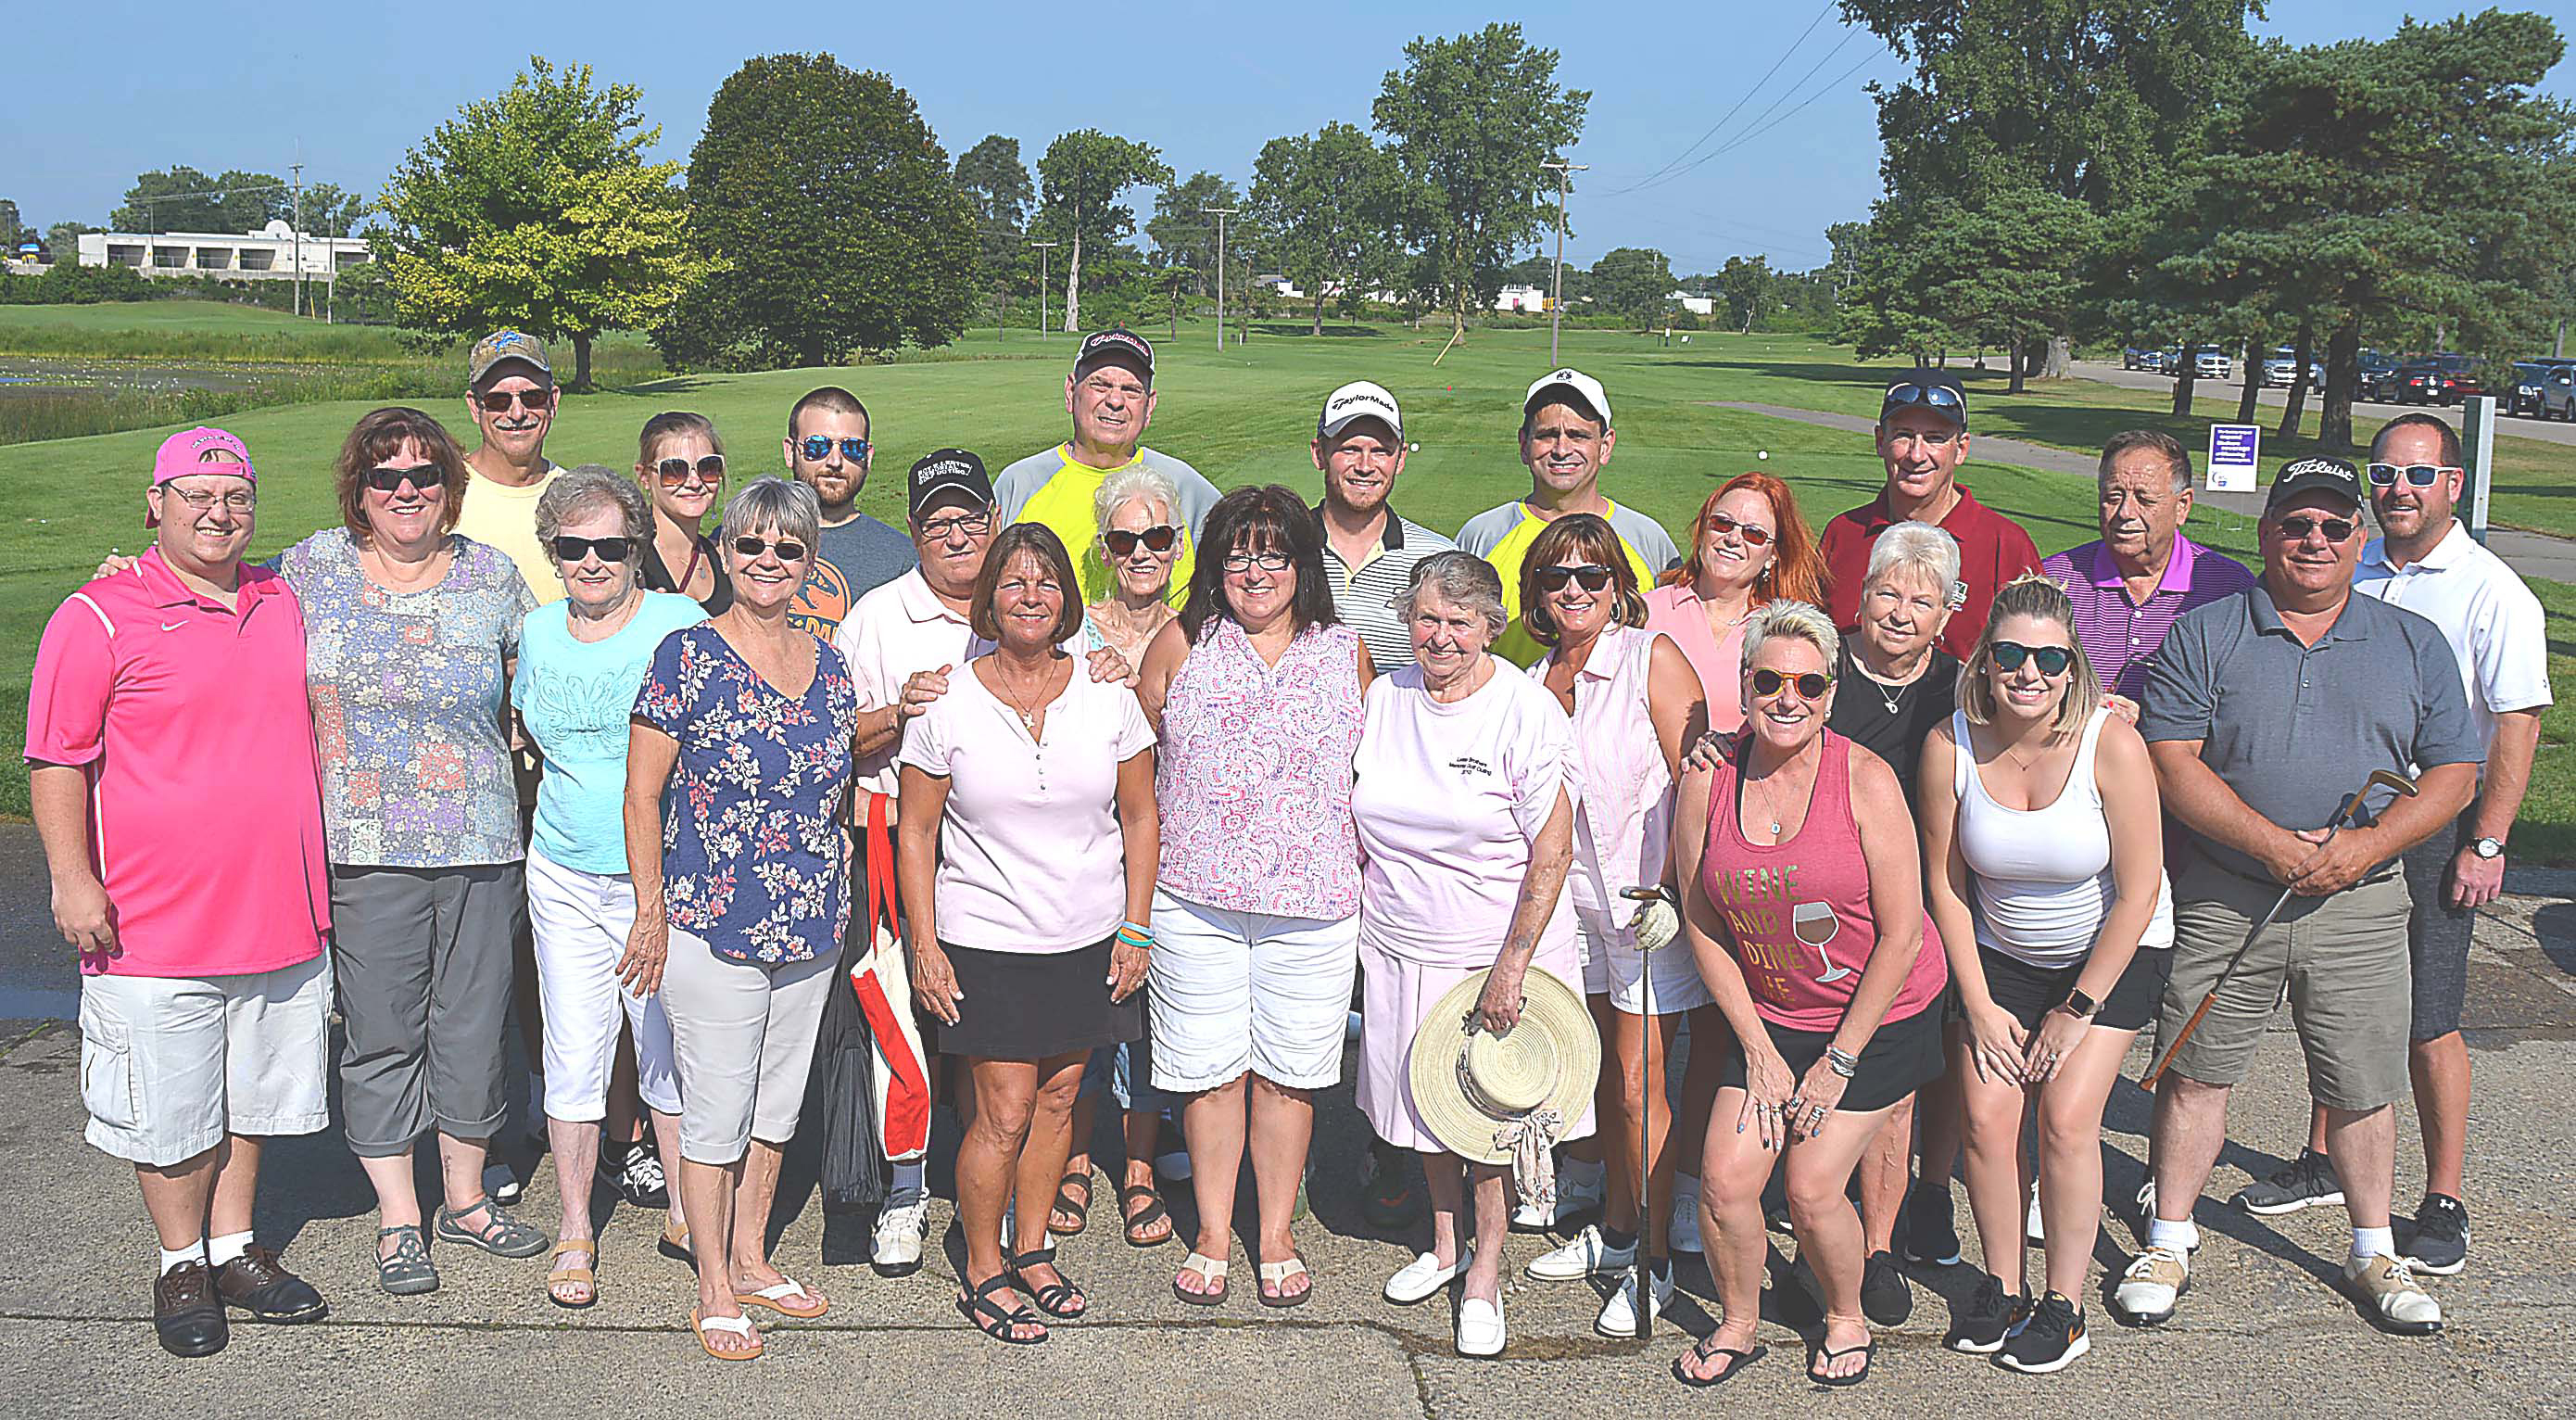 On Sunday, the Lester family hosted its 20th Annual Roy and Budd Lester Memorial Golf Scramble at the Oxford Hills Golf Club. A total of 144 golfers hit the course on E. Drahner Rd. to have fun and help fight cancer. Photo by C.J. Carnacchio.